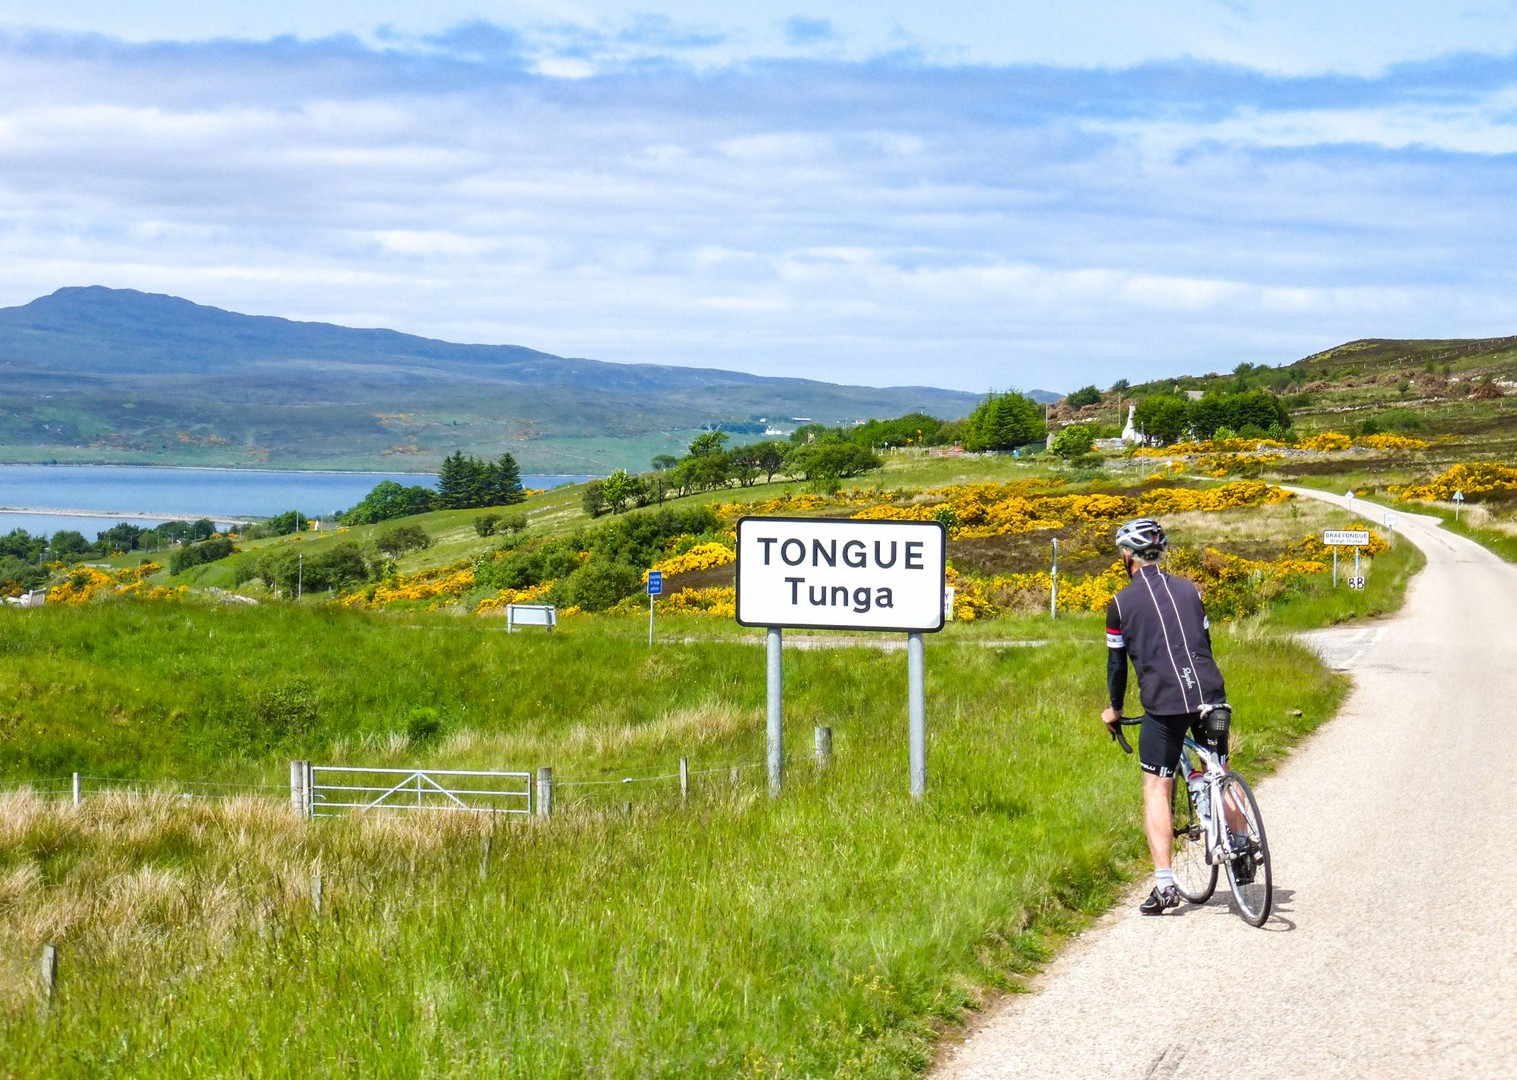 group-cycling-holiday-cycling-length-of-mainland-britain-bike-guided-saddle-skedaddle.jpg - UK - Land's End to John O'Groats Classic (16 days) - Guided Road Cycling Holiday - Road Cycling